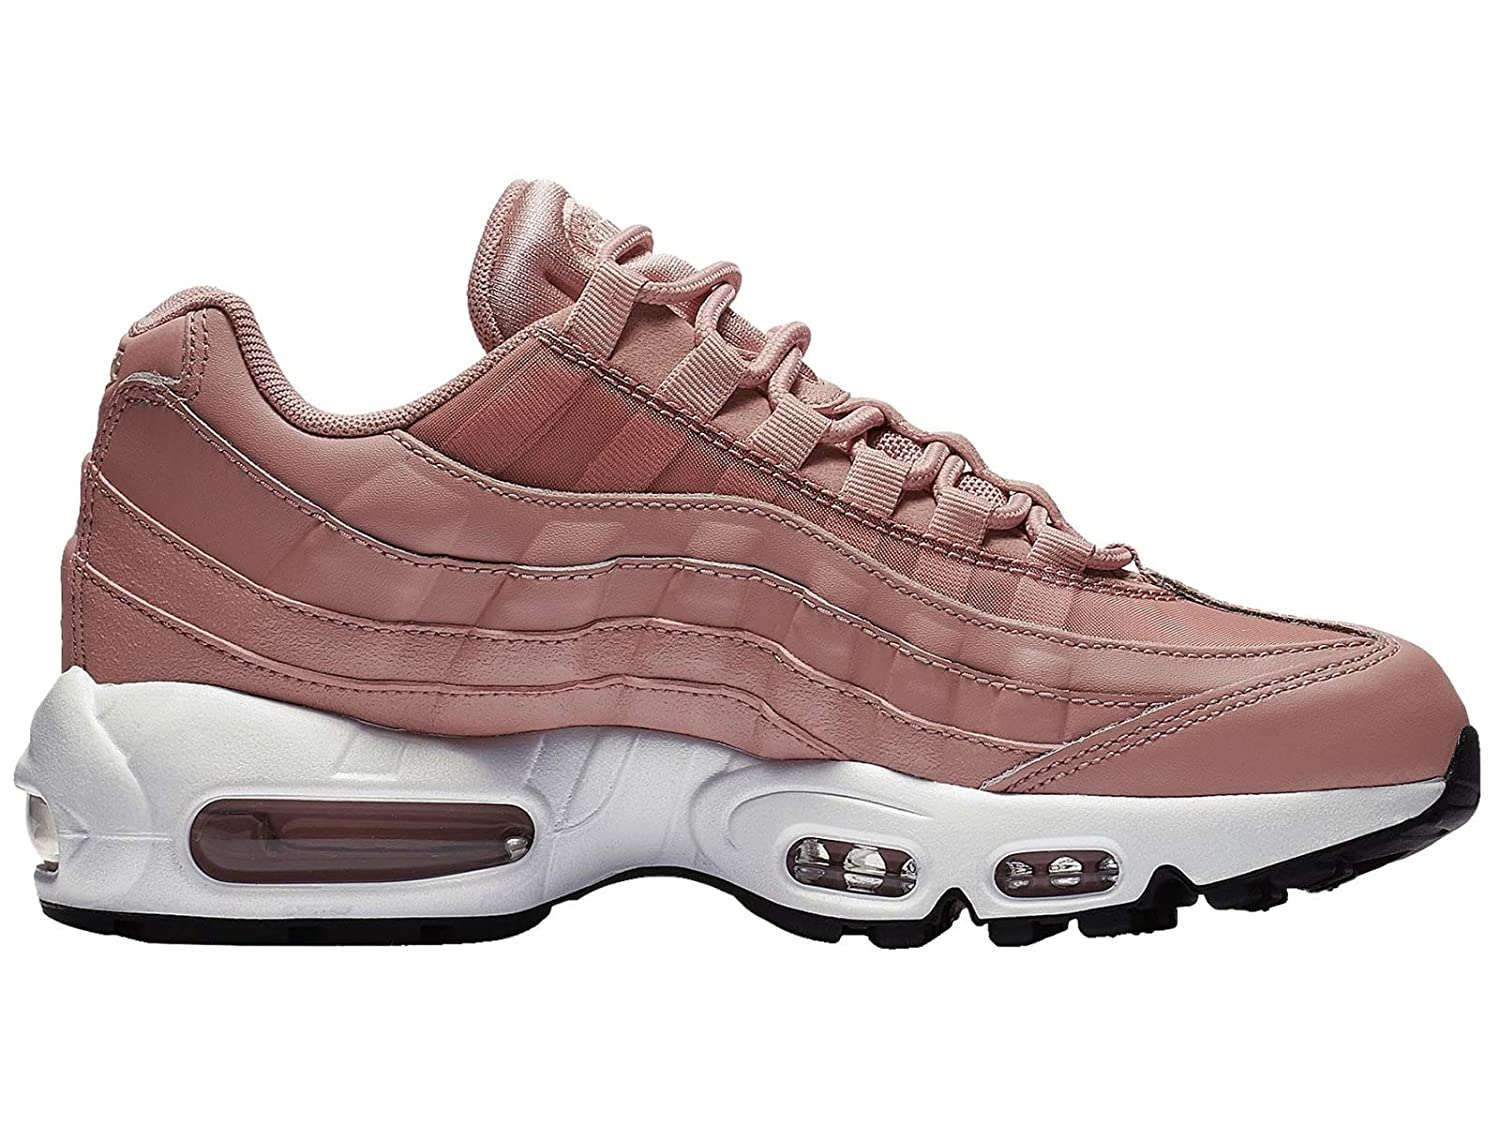 new style 0b909 2e682 Amazon.com   Nike Air Max 95 - Women s Rust Pink Particle Beige Black White  Nylon Running Shoes 10 B(M) US   Road Running